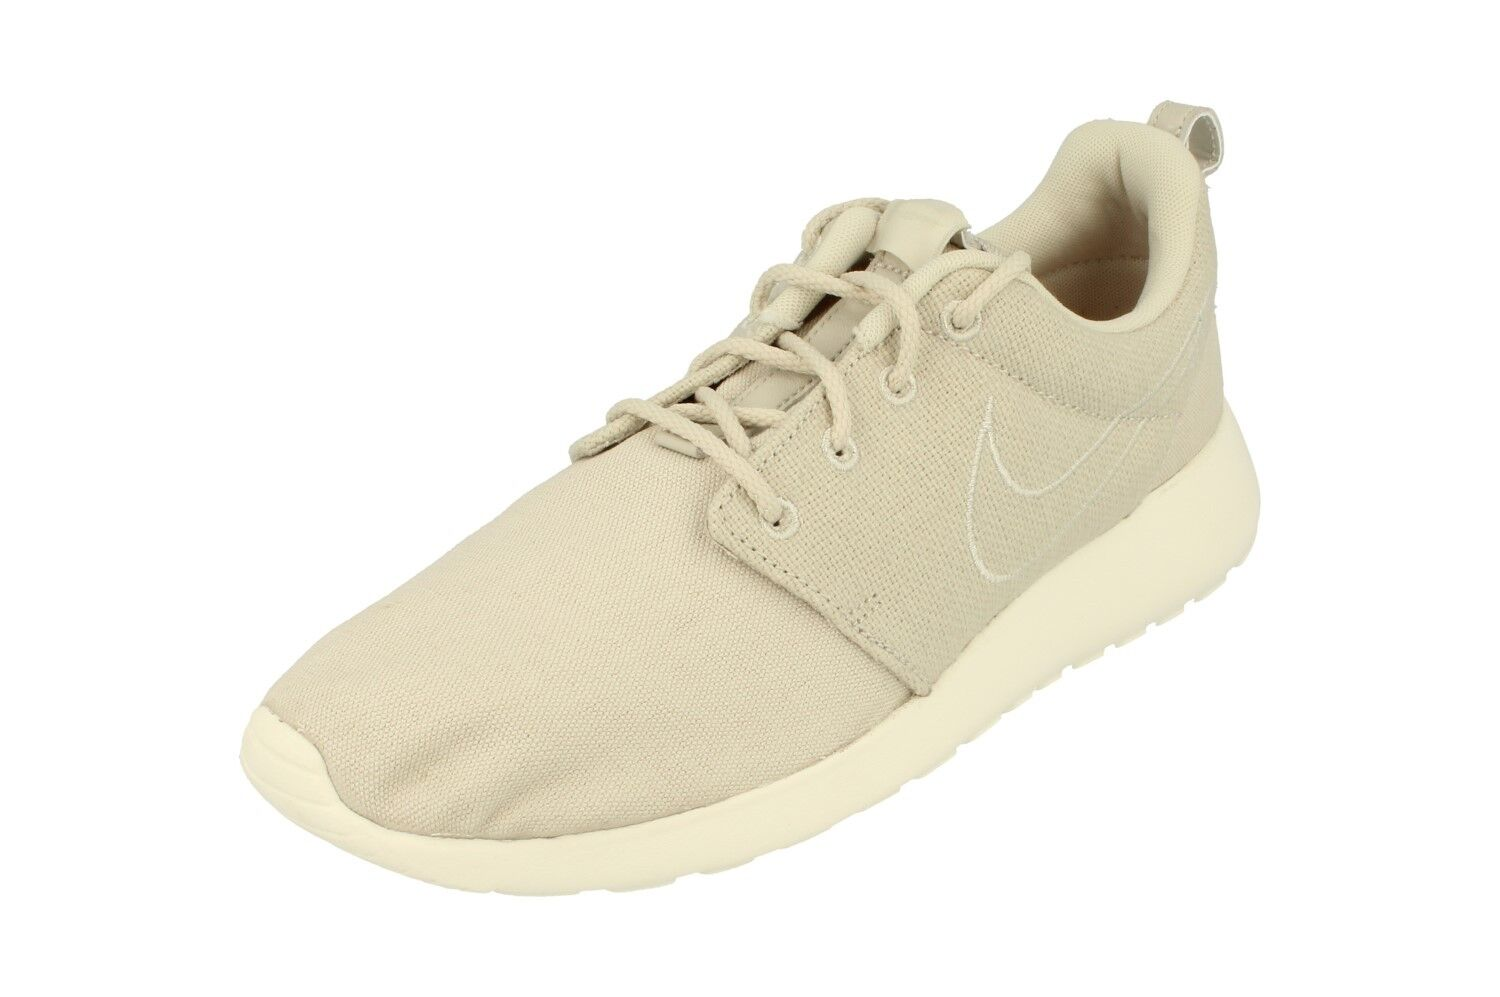 Nike Roshe One Premium Mens Running Trainers 525234 Sneakers shoes